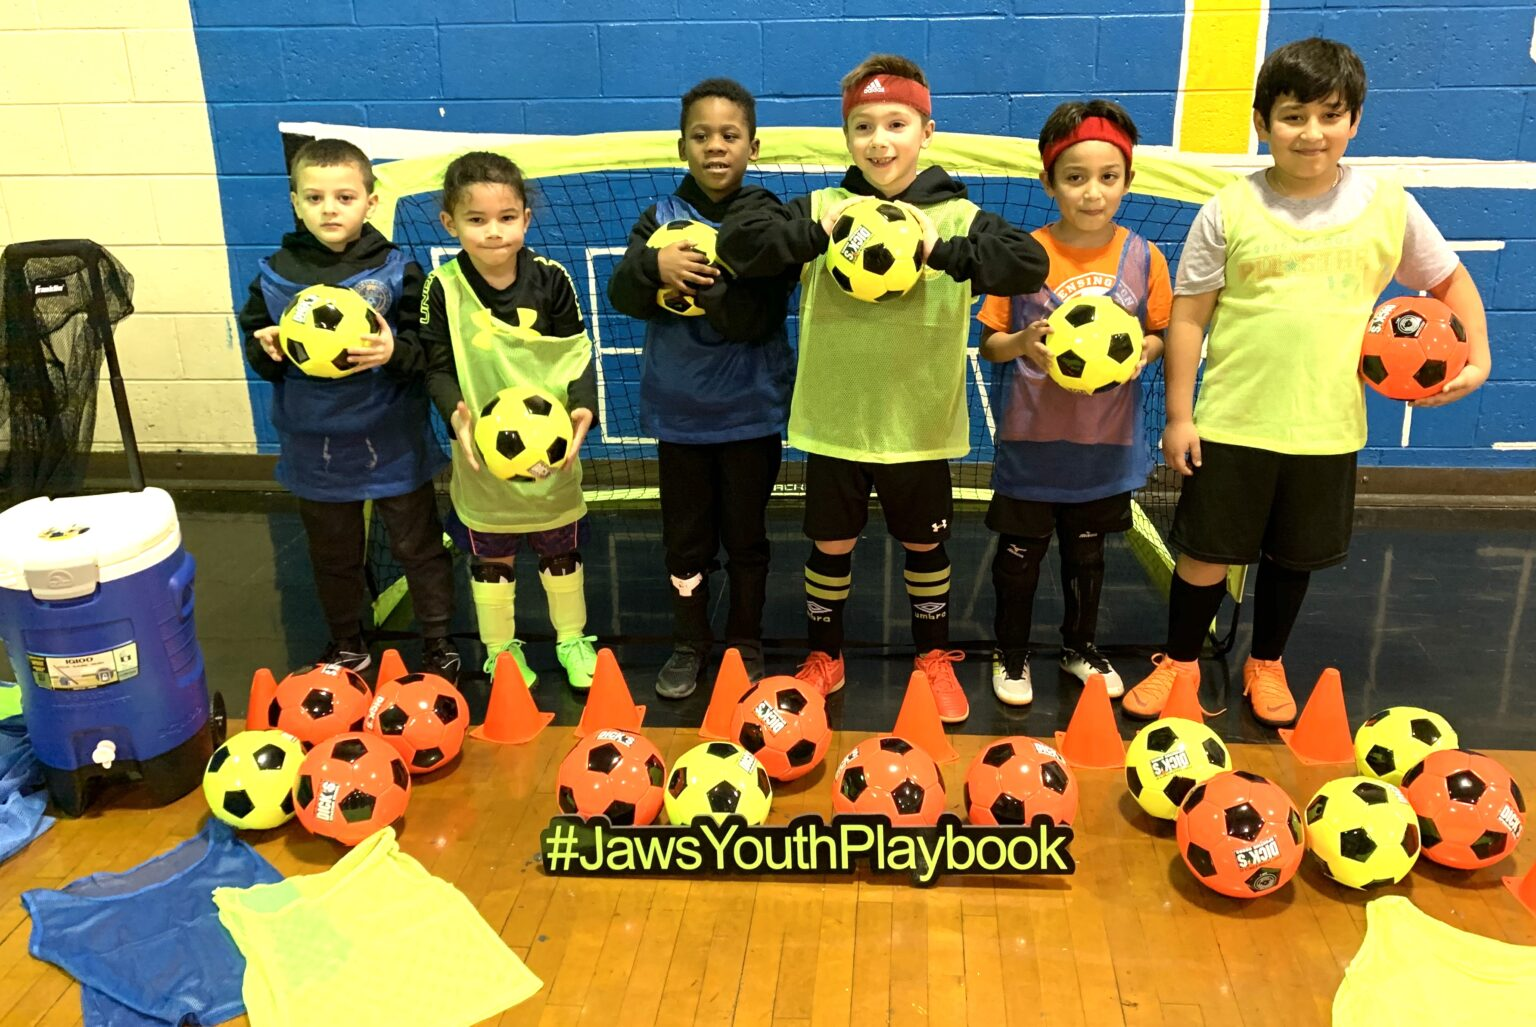 Jaws Youth Playbook Donates Soccer Equipment to the Kensington Soccer Club